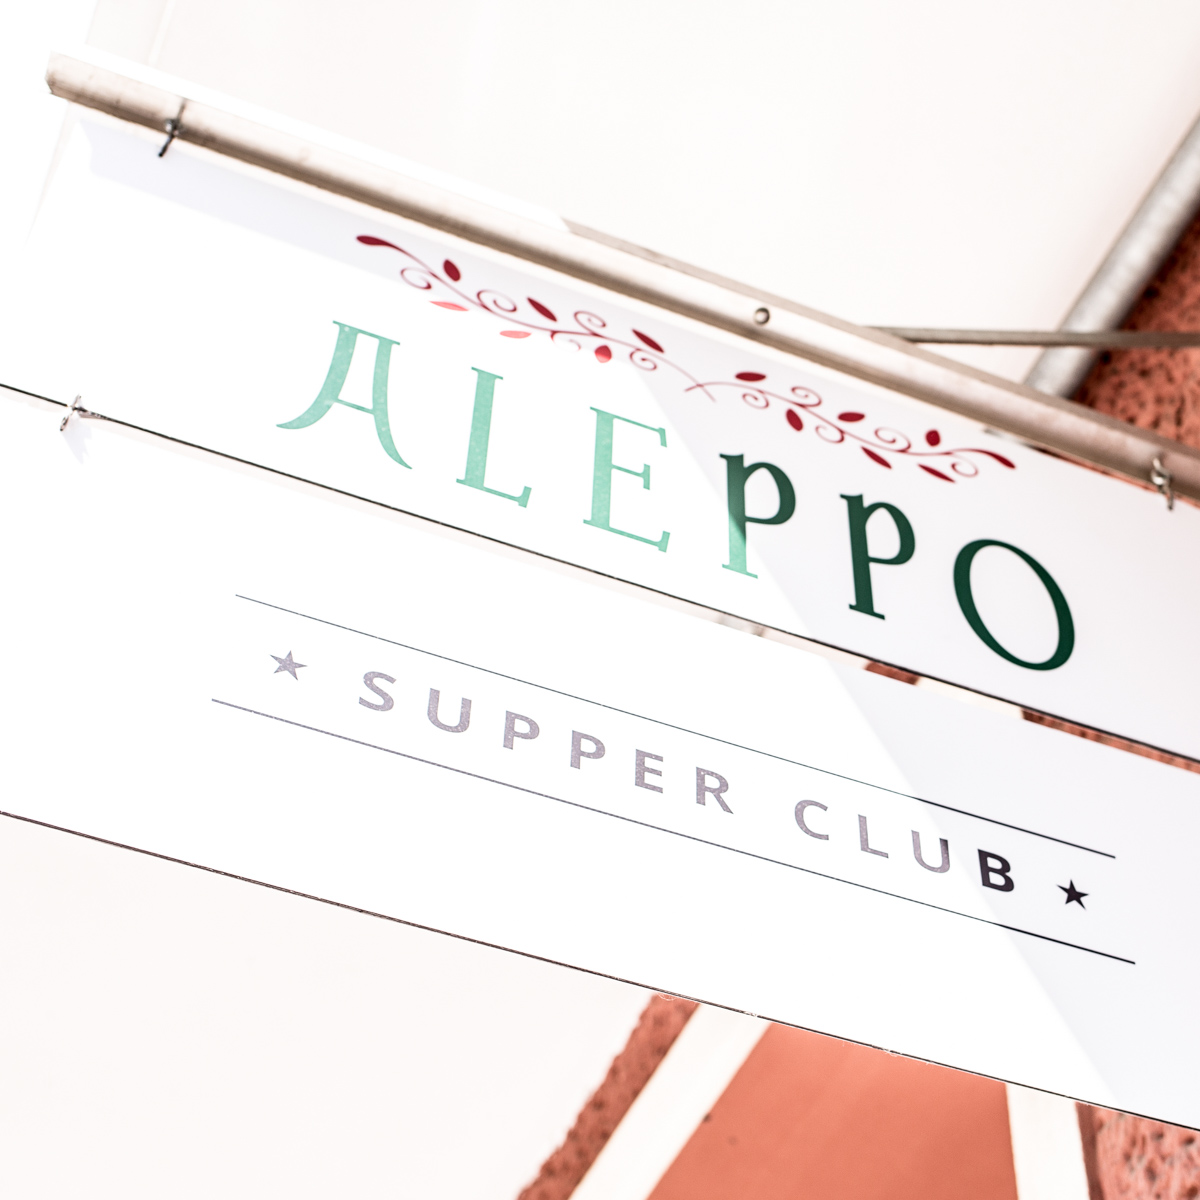 Aleppo Supper Club Berlin-4